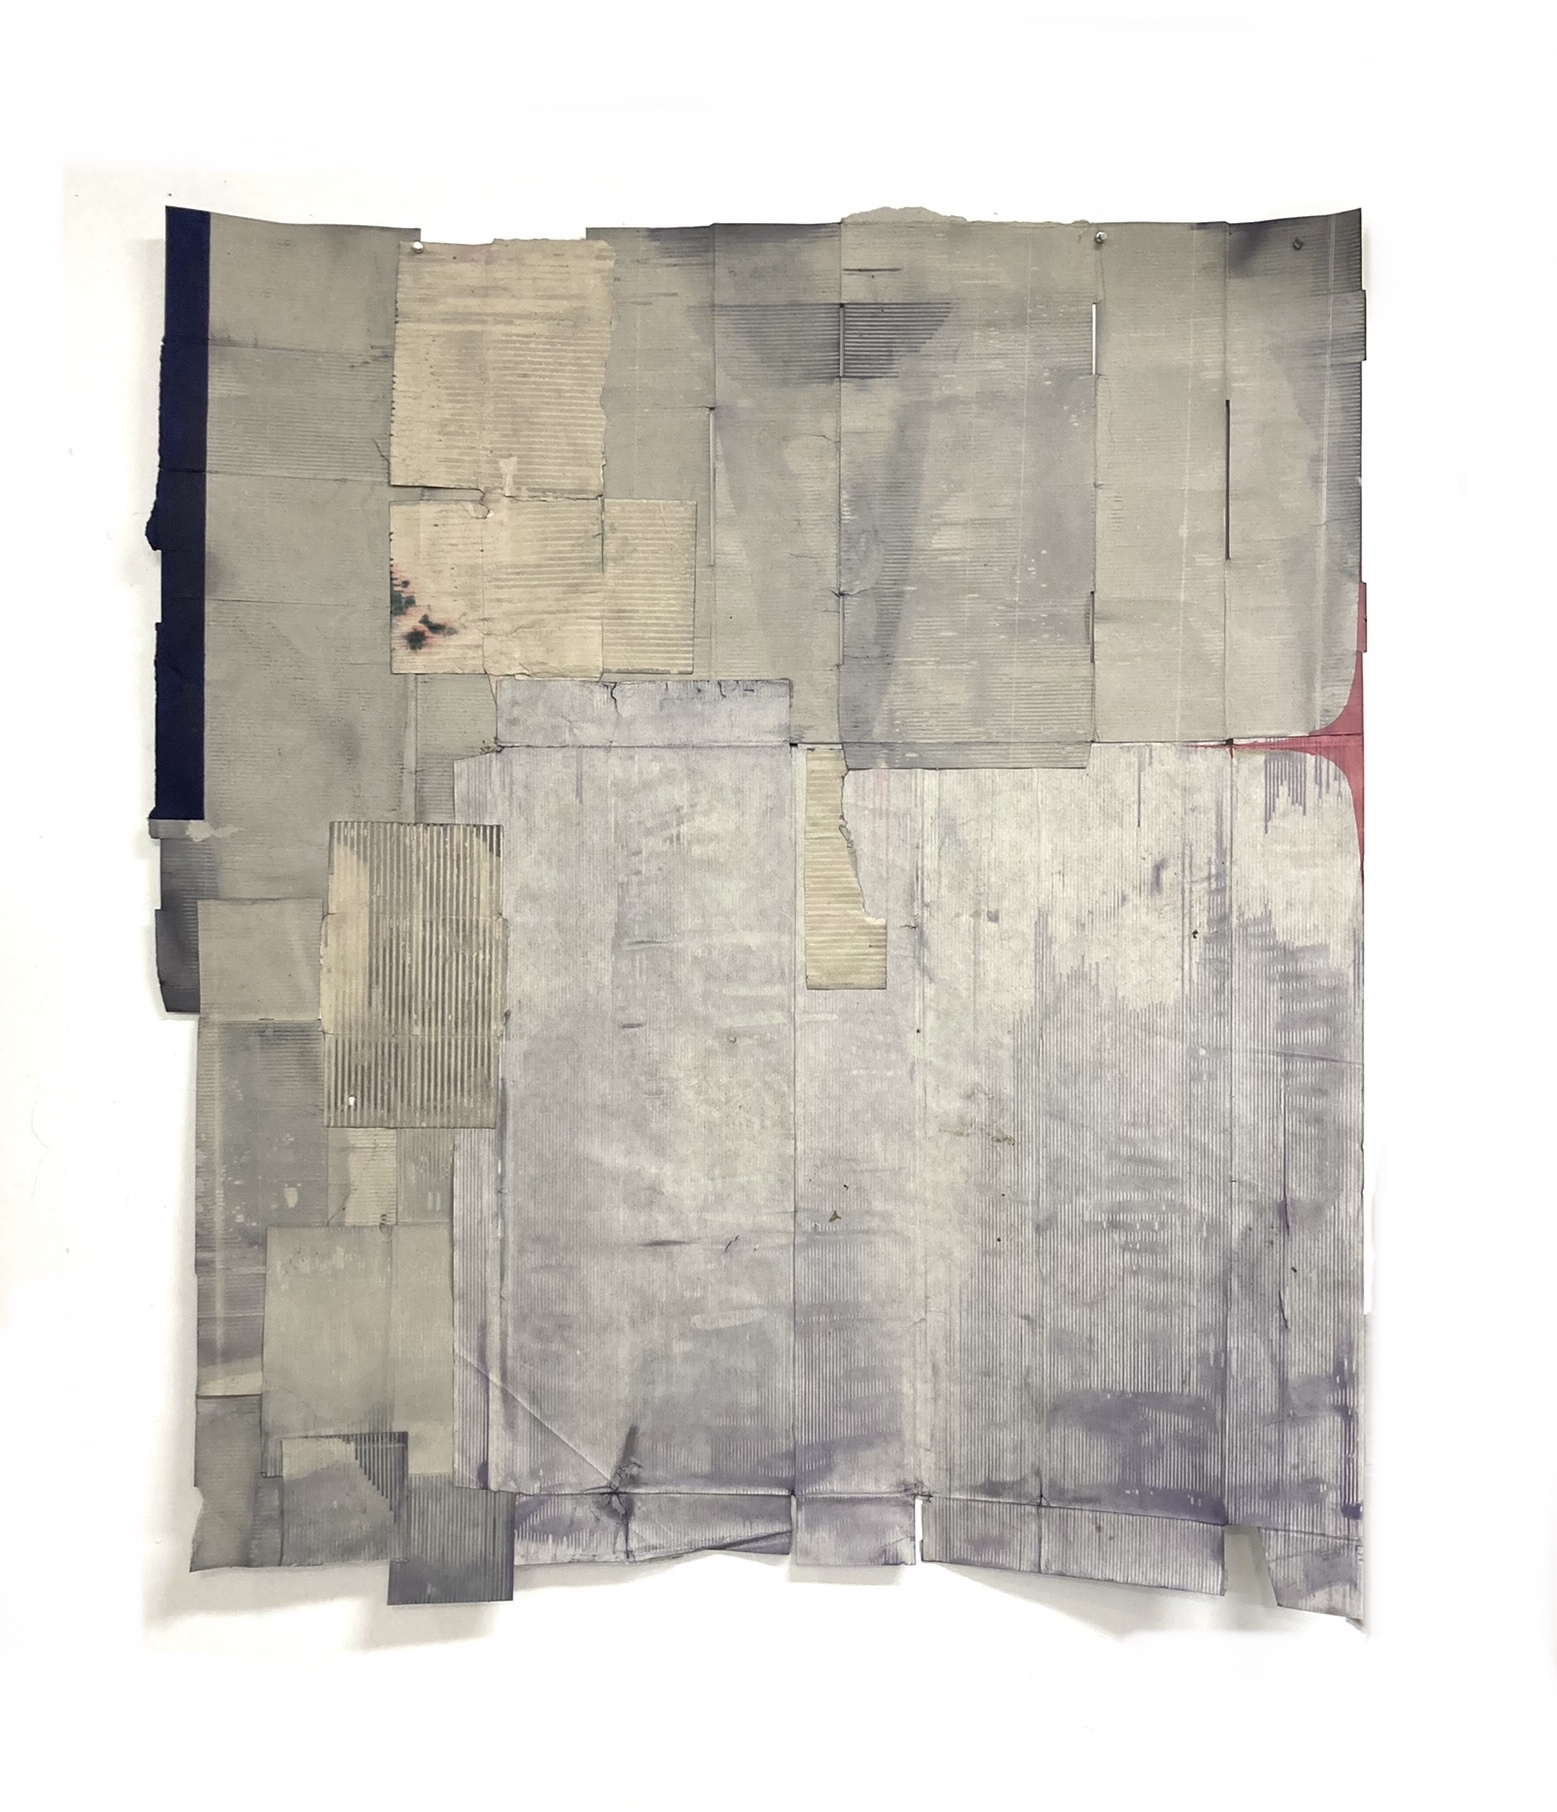 """Jodi Hays, Mirror, 51"""" x 46"""", dye, oil, paper (images courtesy of the artist and Sam Angel Photography)"""